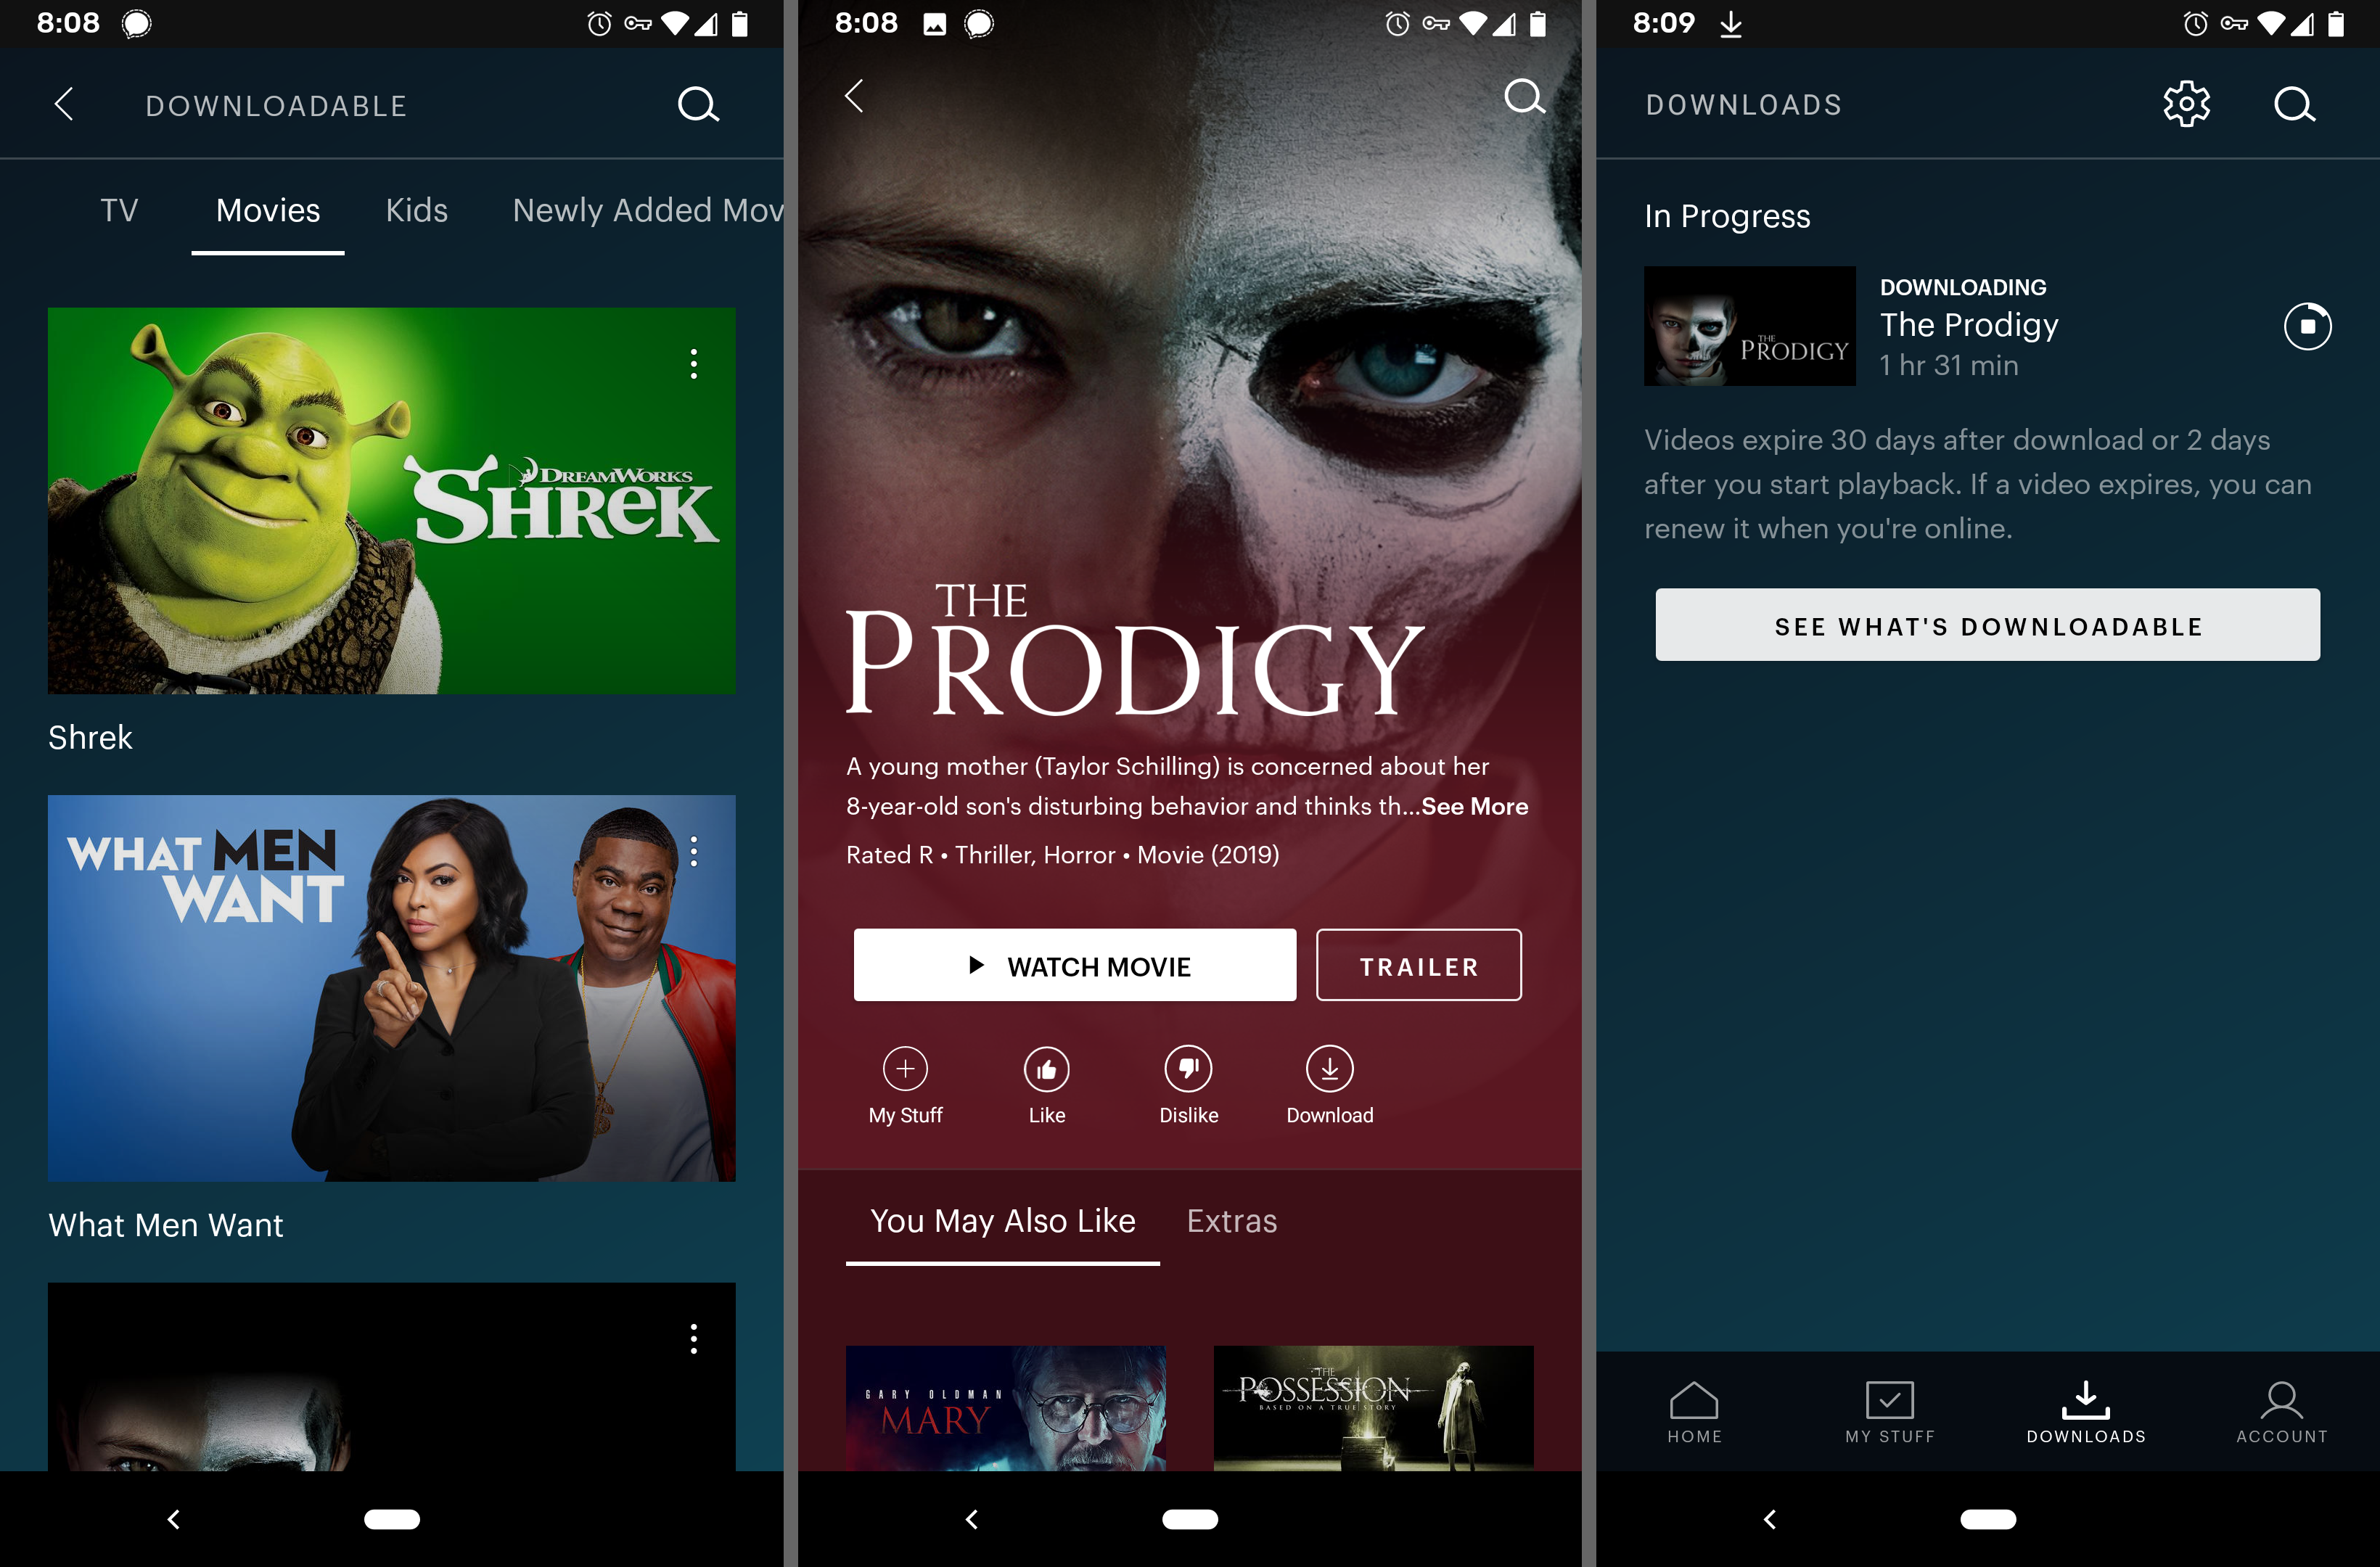 Hulu app downloading a movie on Android